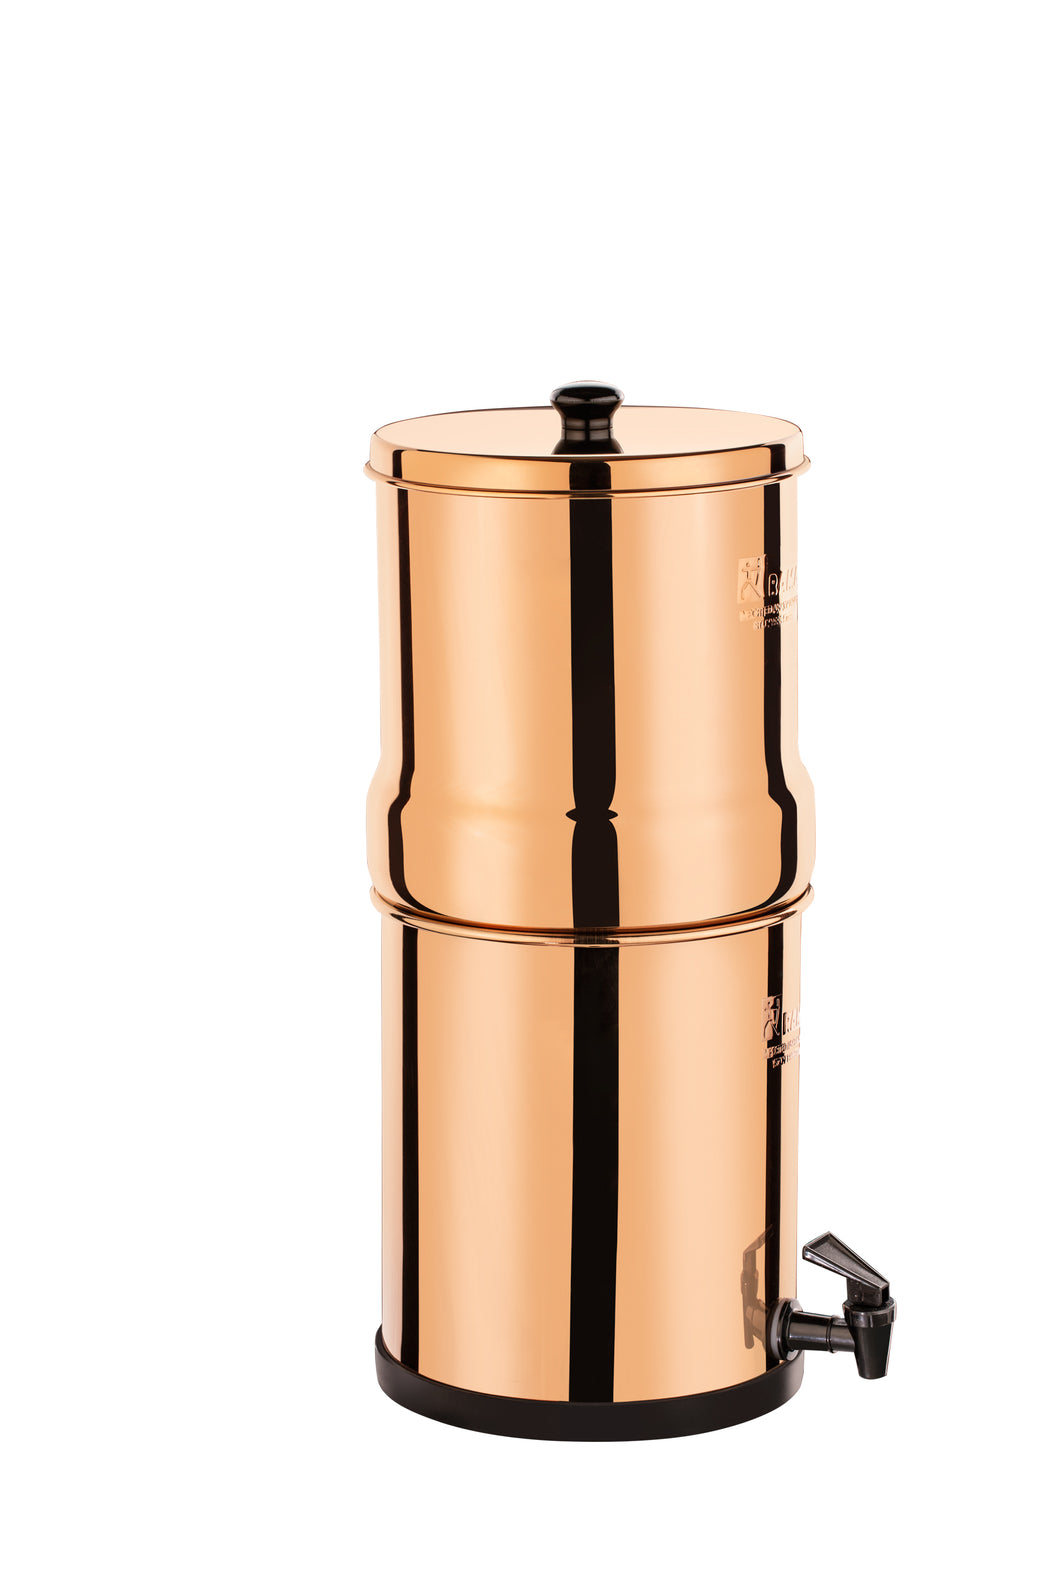 RAMA Gravity Stainless Steel Copper-Color Water Filter and Purifier, 10-Year Warranty, 99.99% Bacteria removal